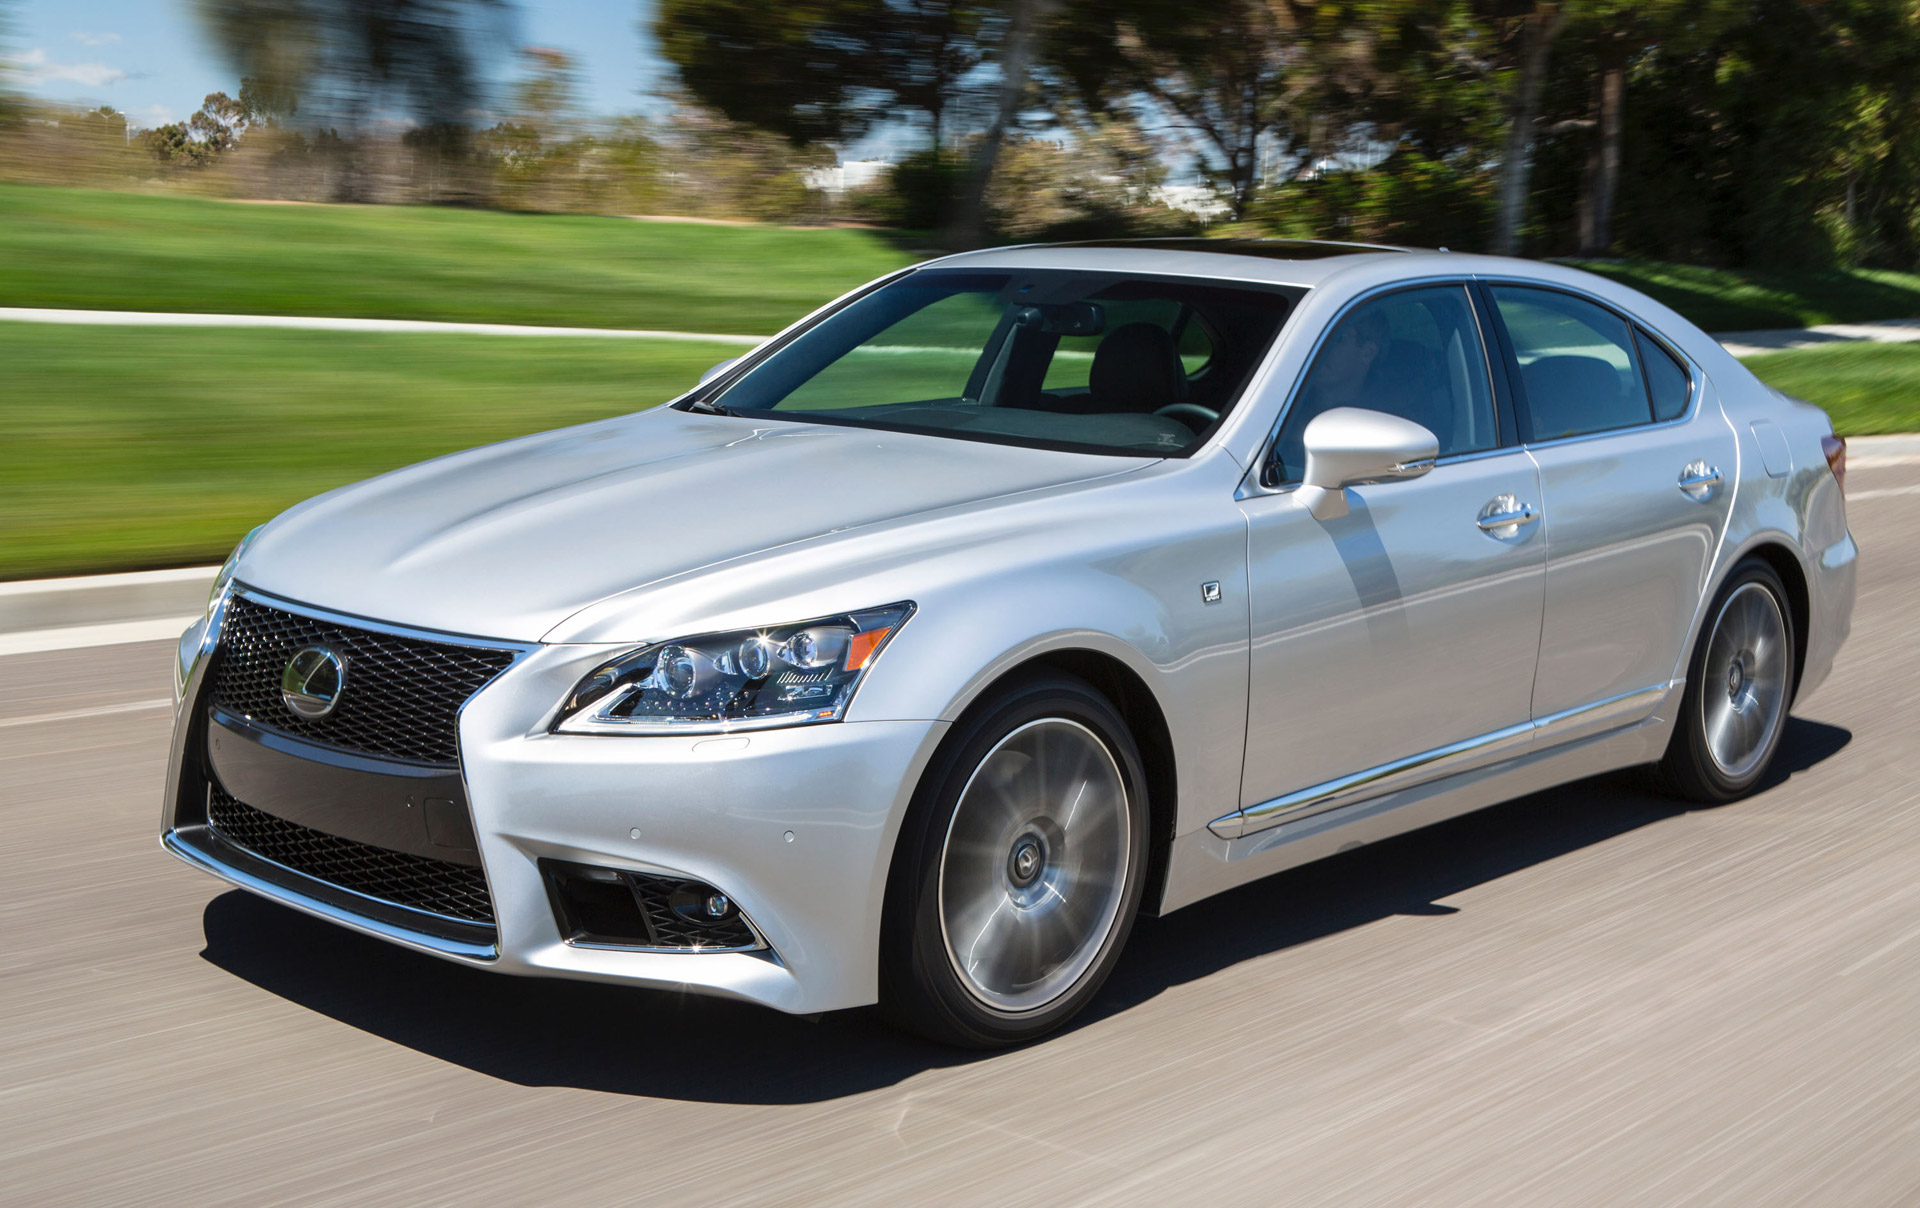 2016 Lexus LS s minor updates ahead of new model s arrival